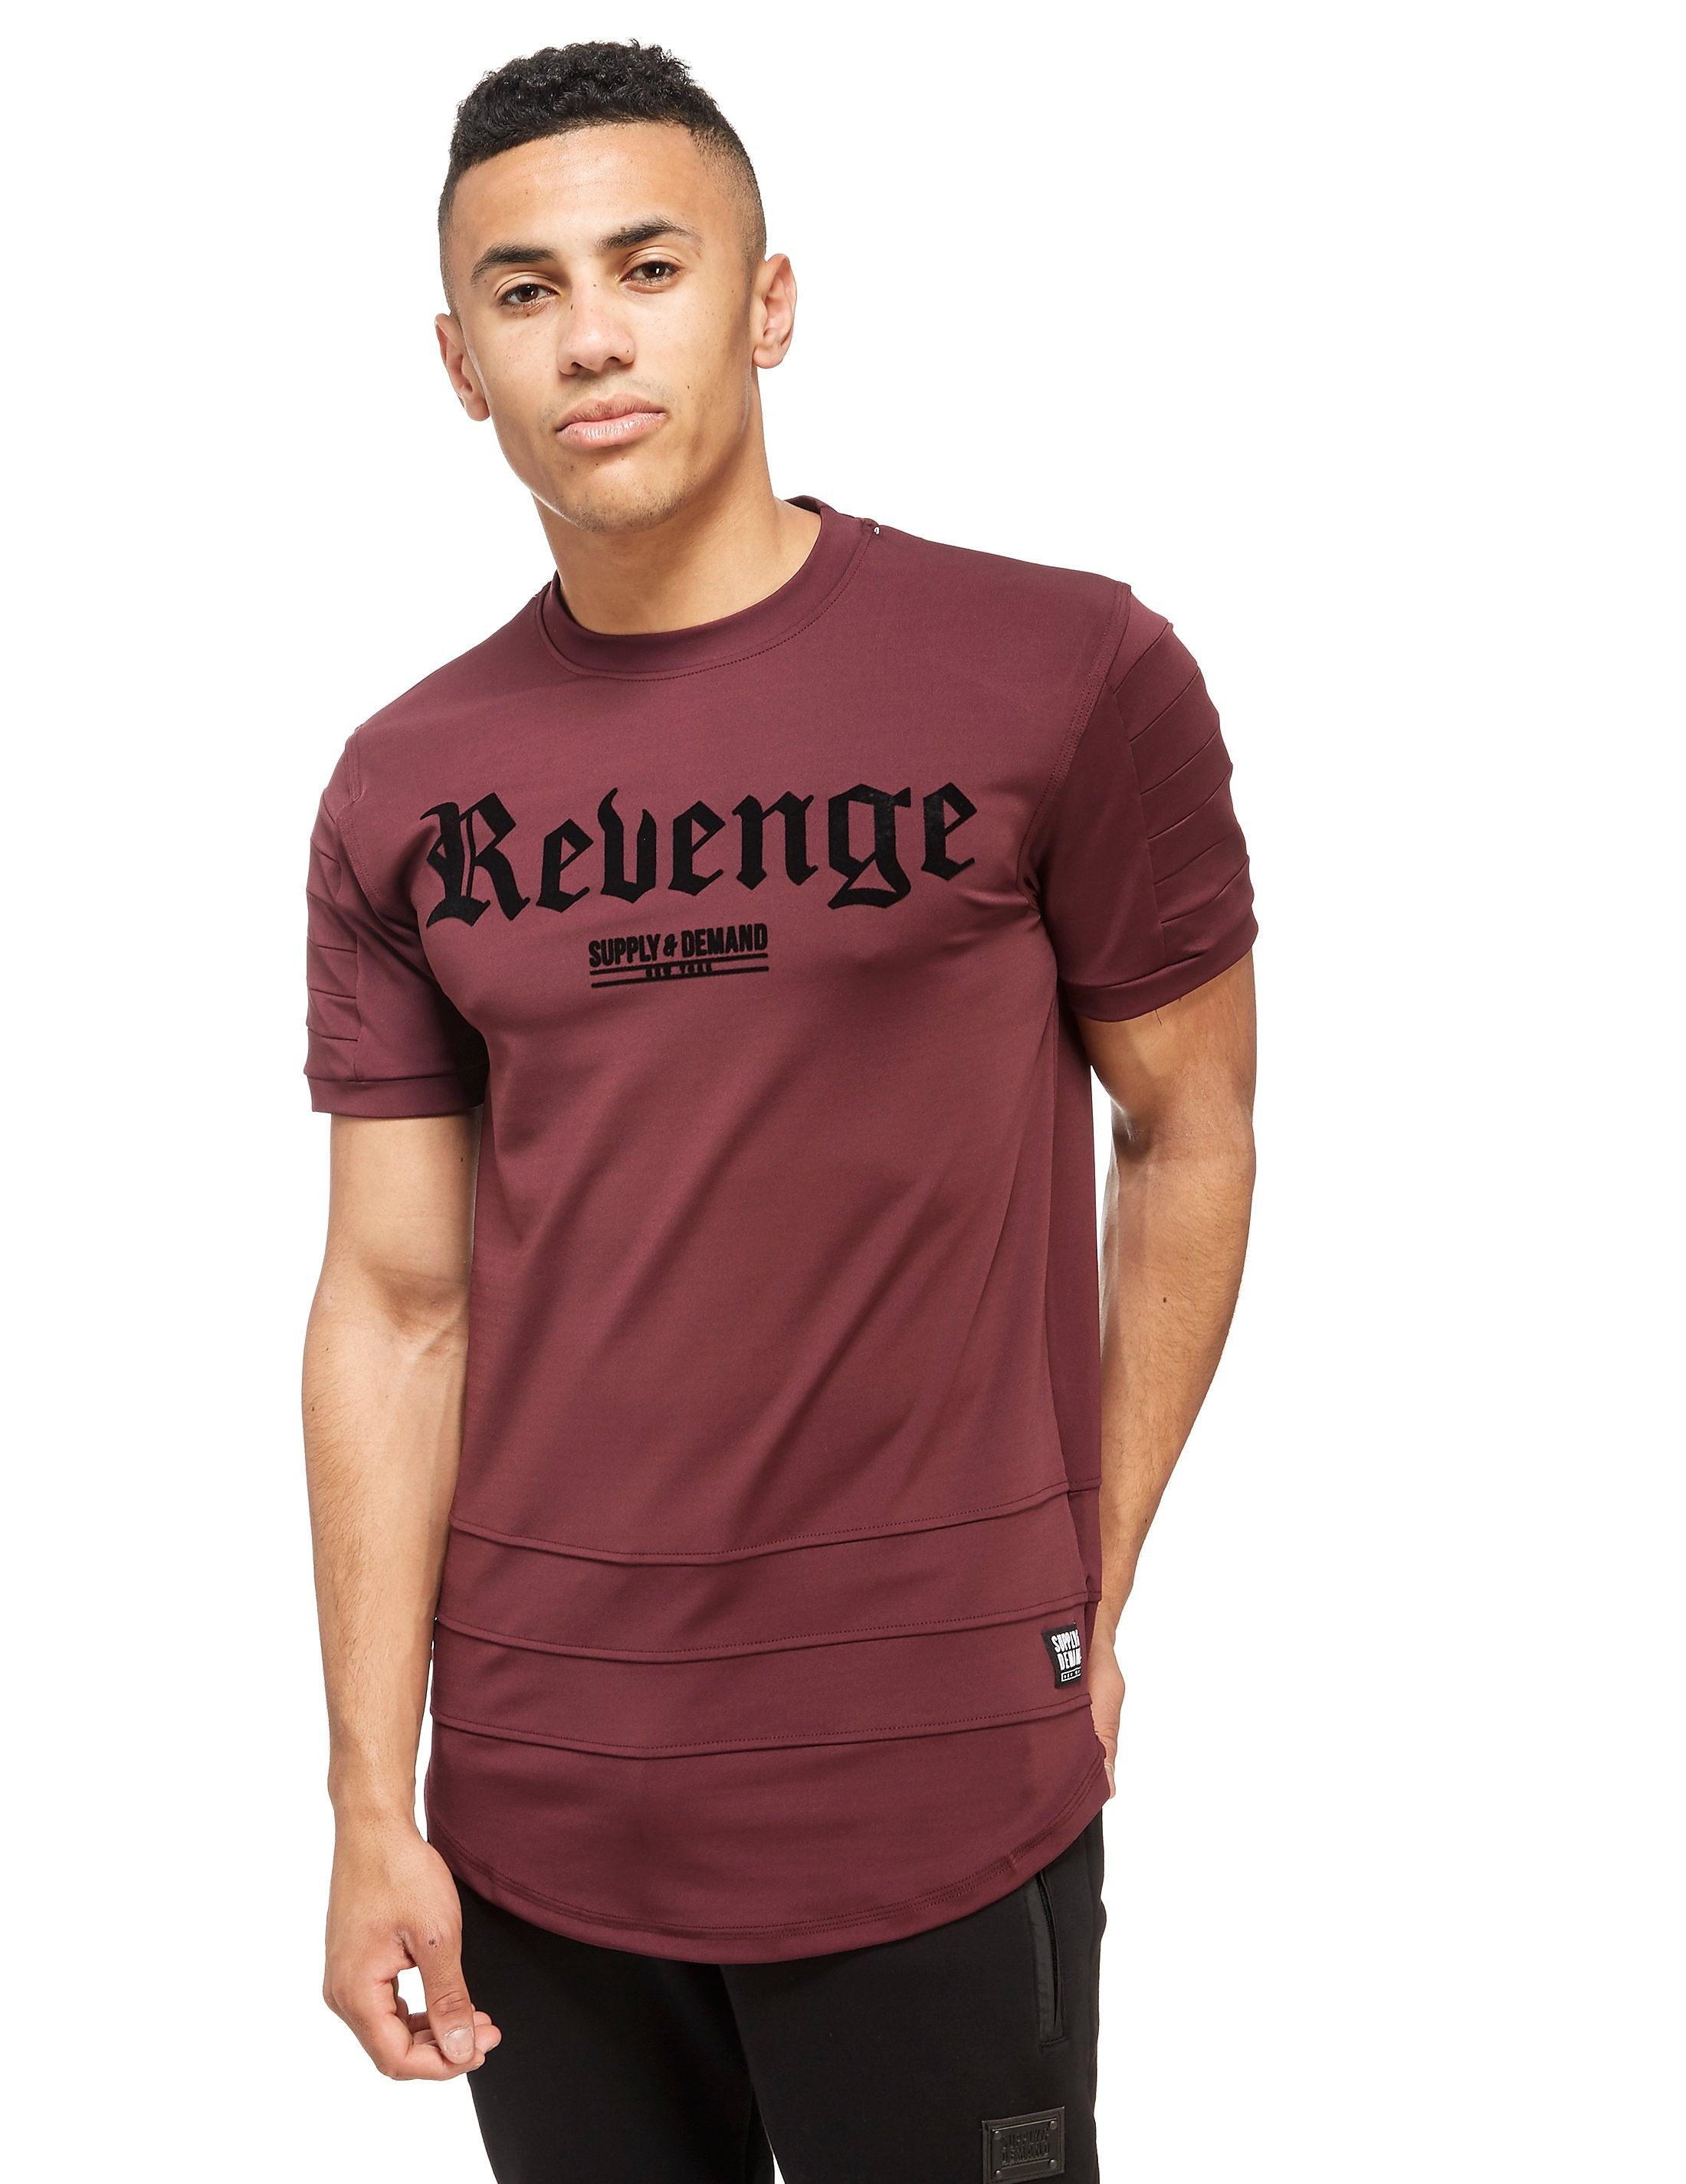 Supply & Demand Gothic Revenge T-Shirt